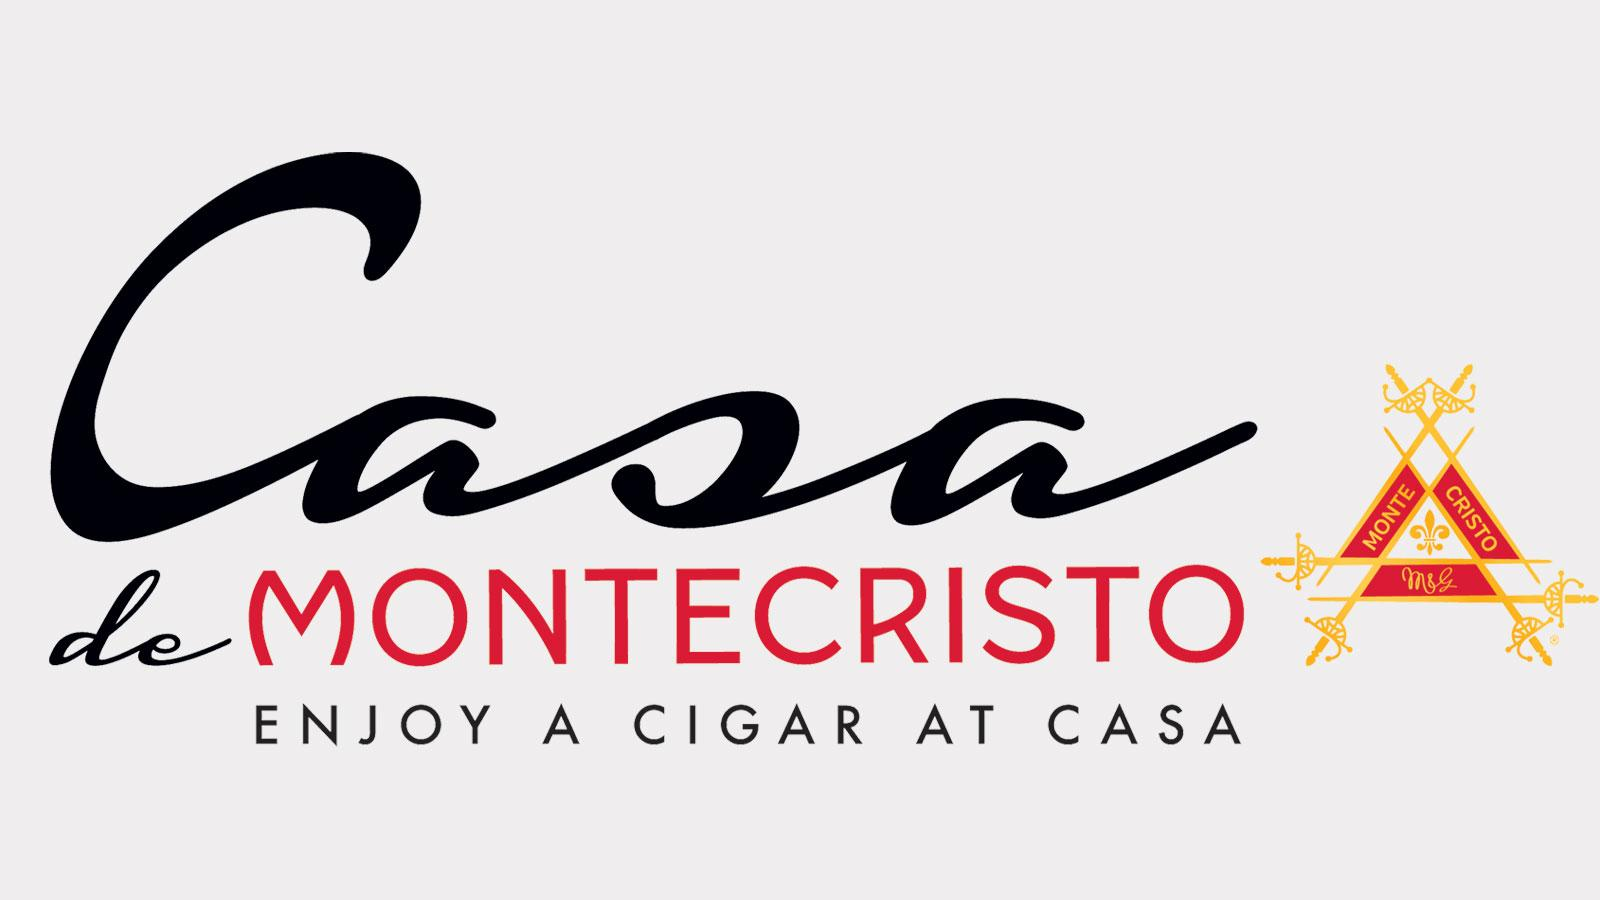 Washington Casa de Montecristo Moving To New Location, No Smoking Allowed Inside